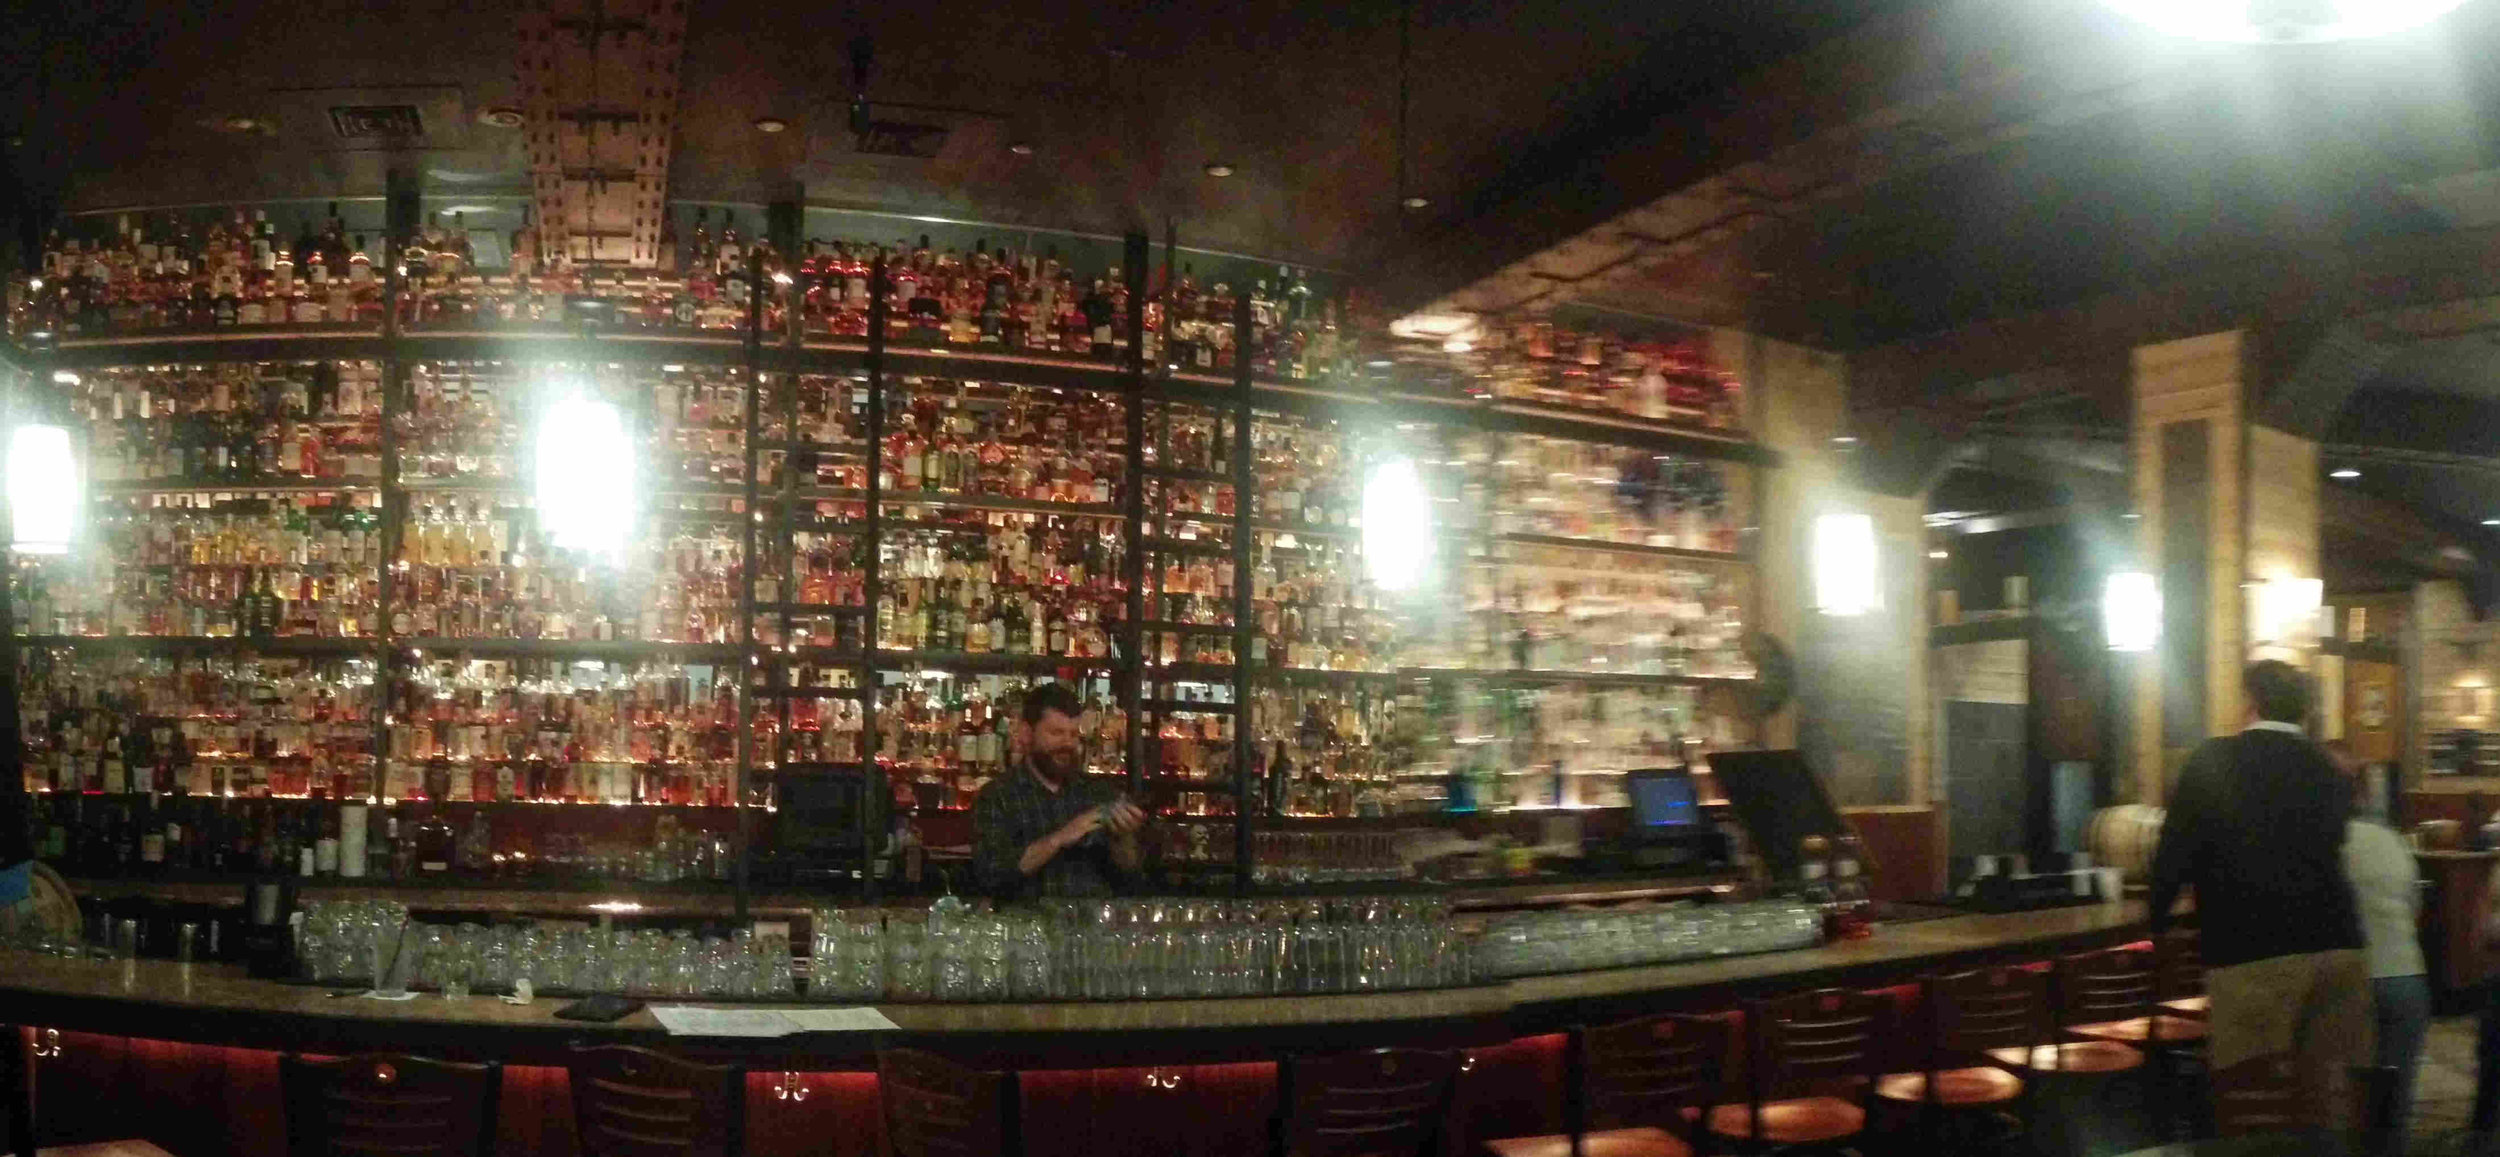 Whiskey library at McCormack's Big Whiskey Grill in Richmond. Yes I had to do a panoramic shot to fit it all in.